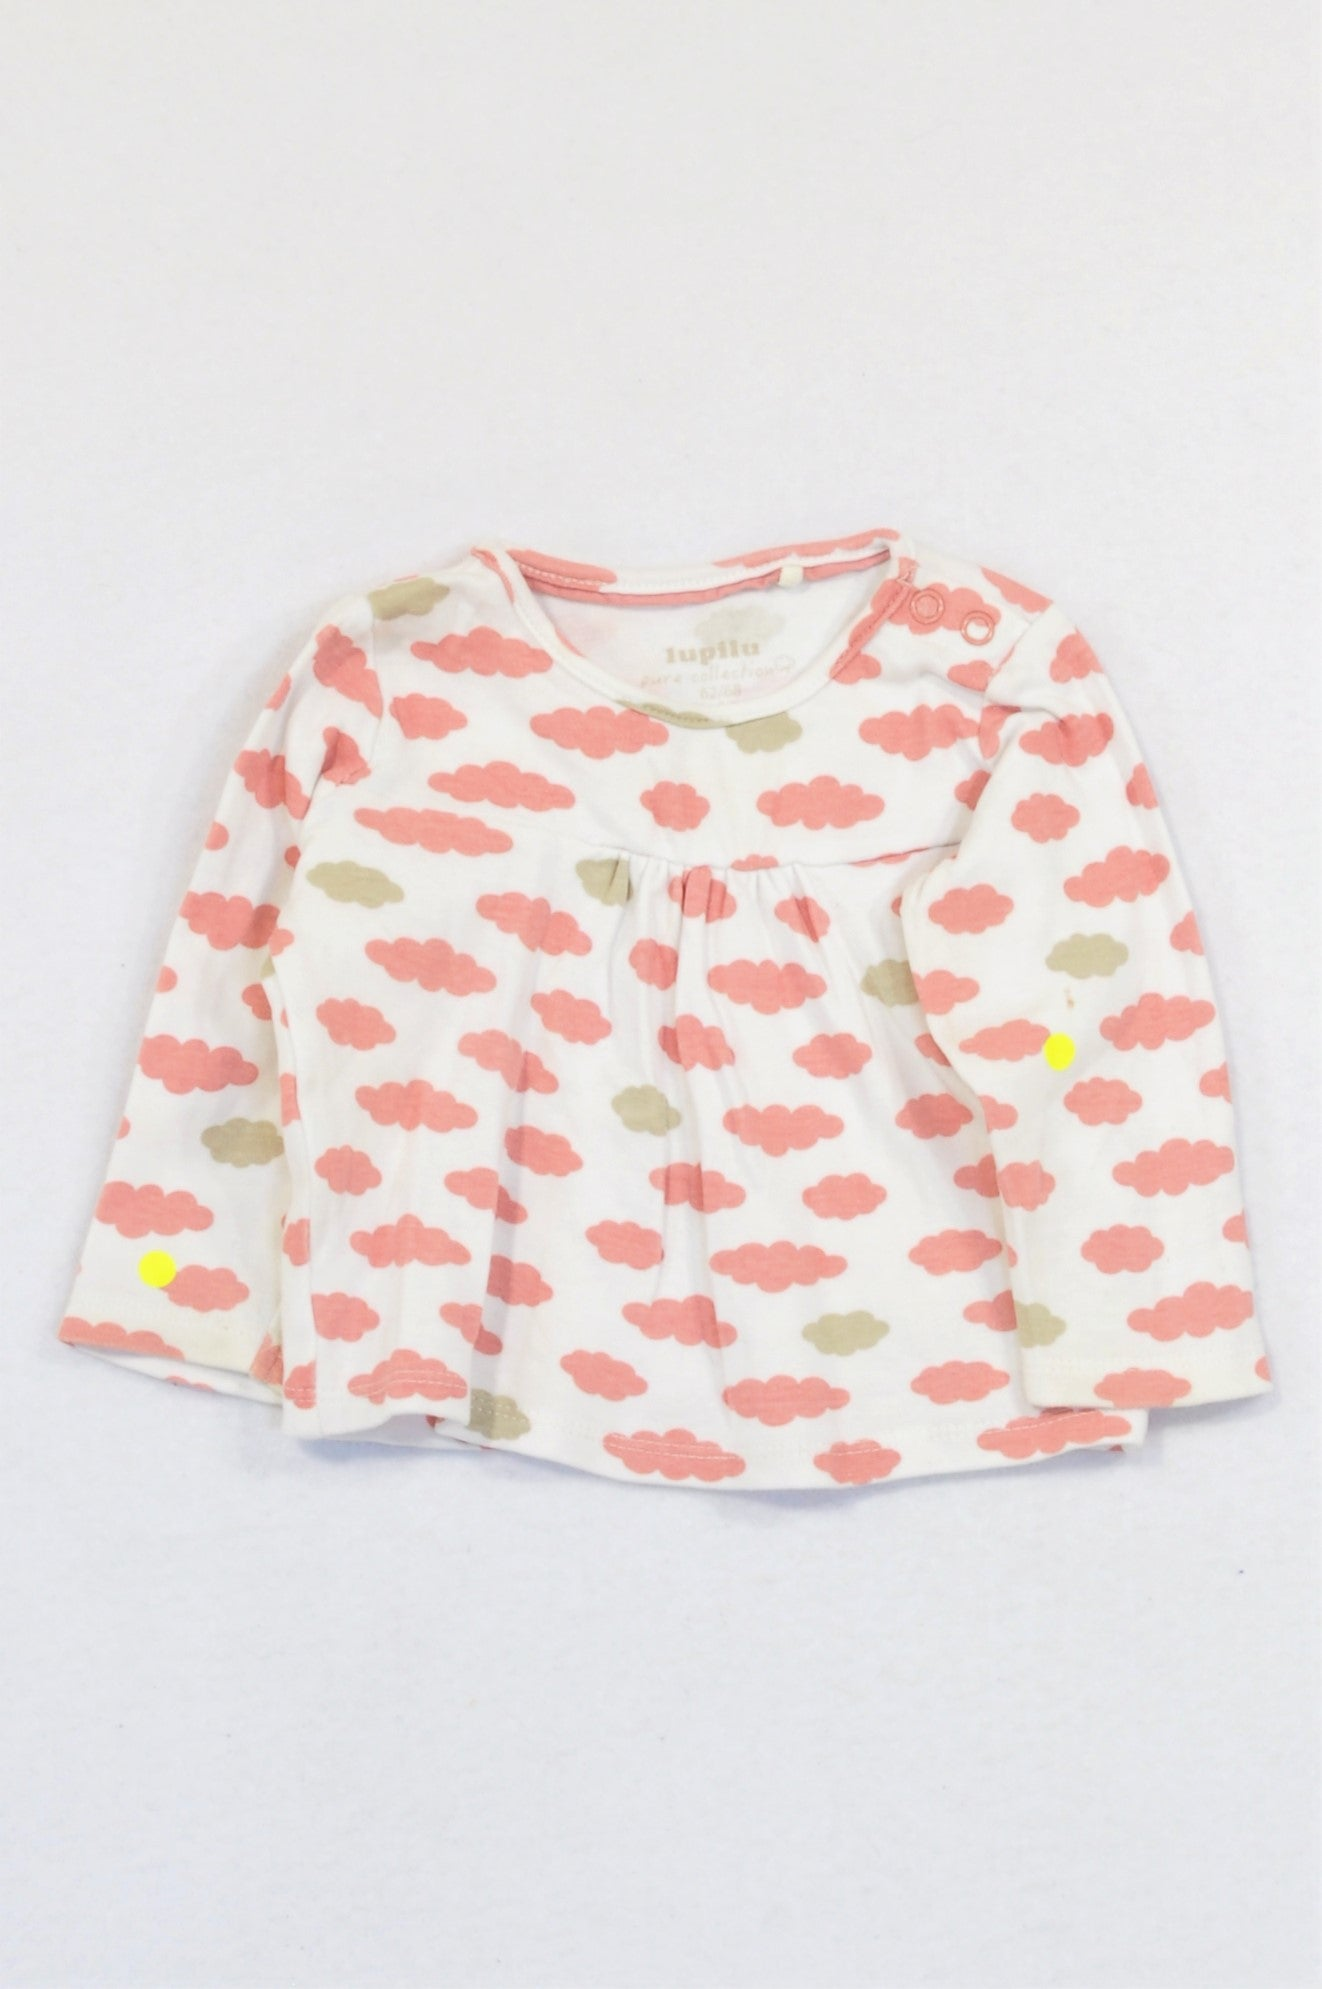 Lupilu Pink & Beige Cloudy Baby Doll Top Girls 3-6 months